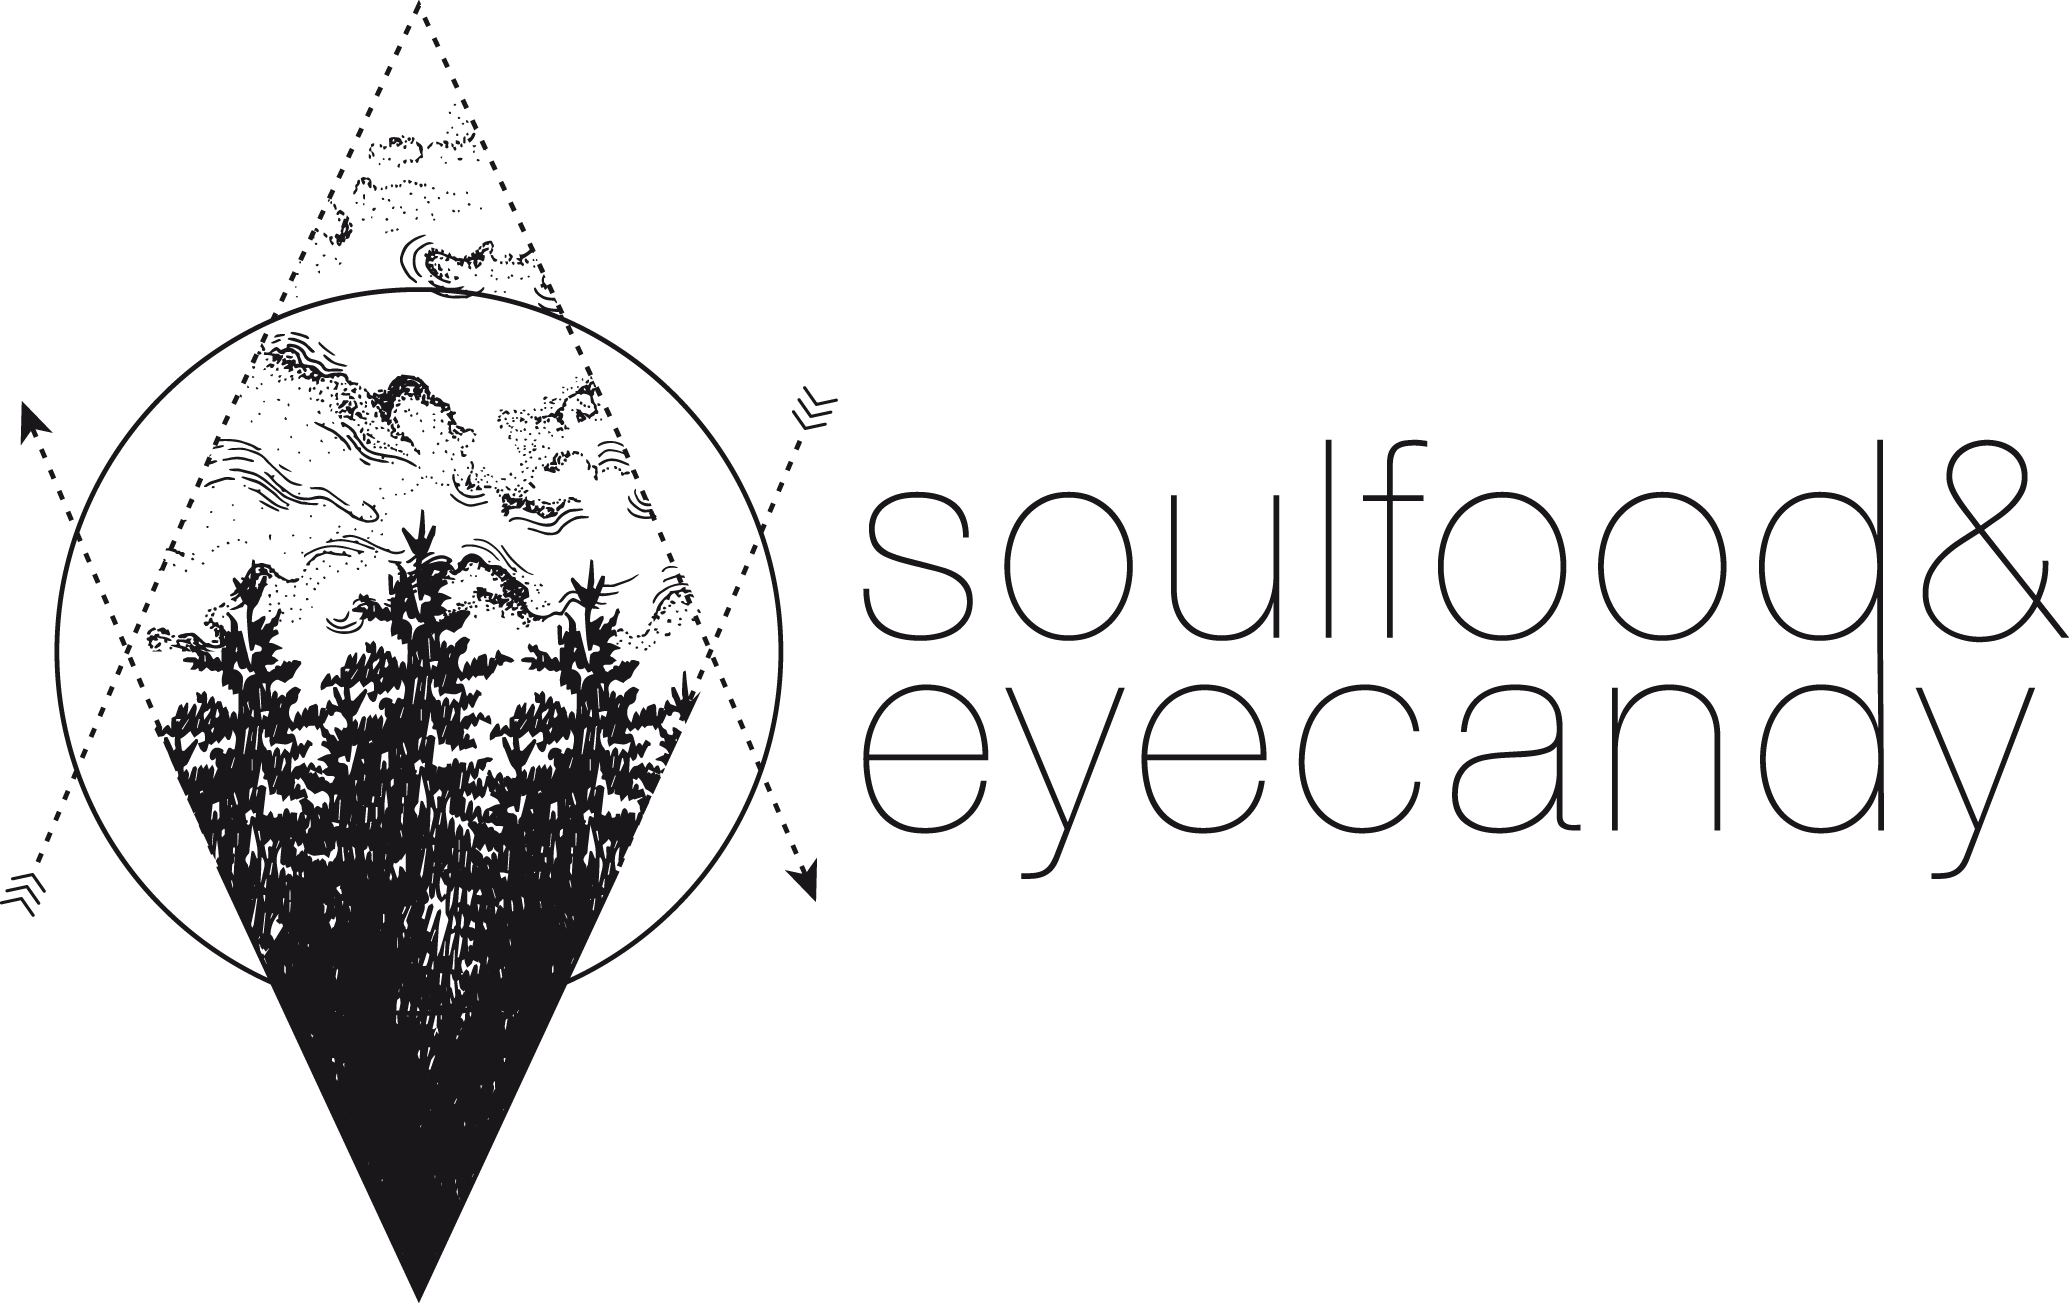 soulfood & eyecandy